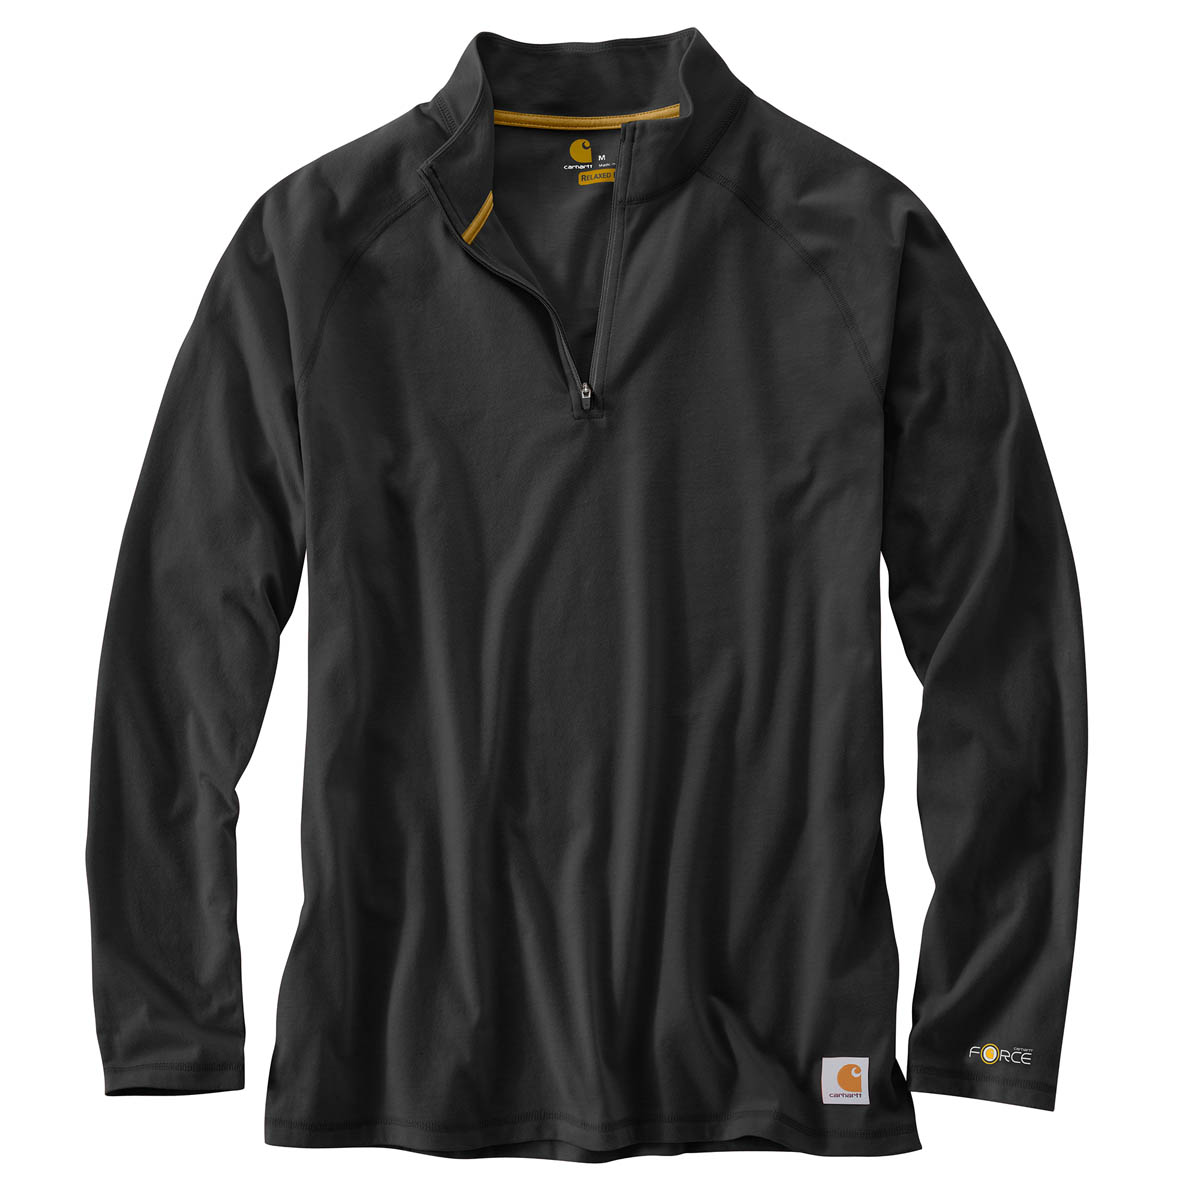 Carhartt Men's Force Cotton Delmont Quarter Zip